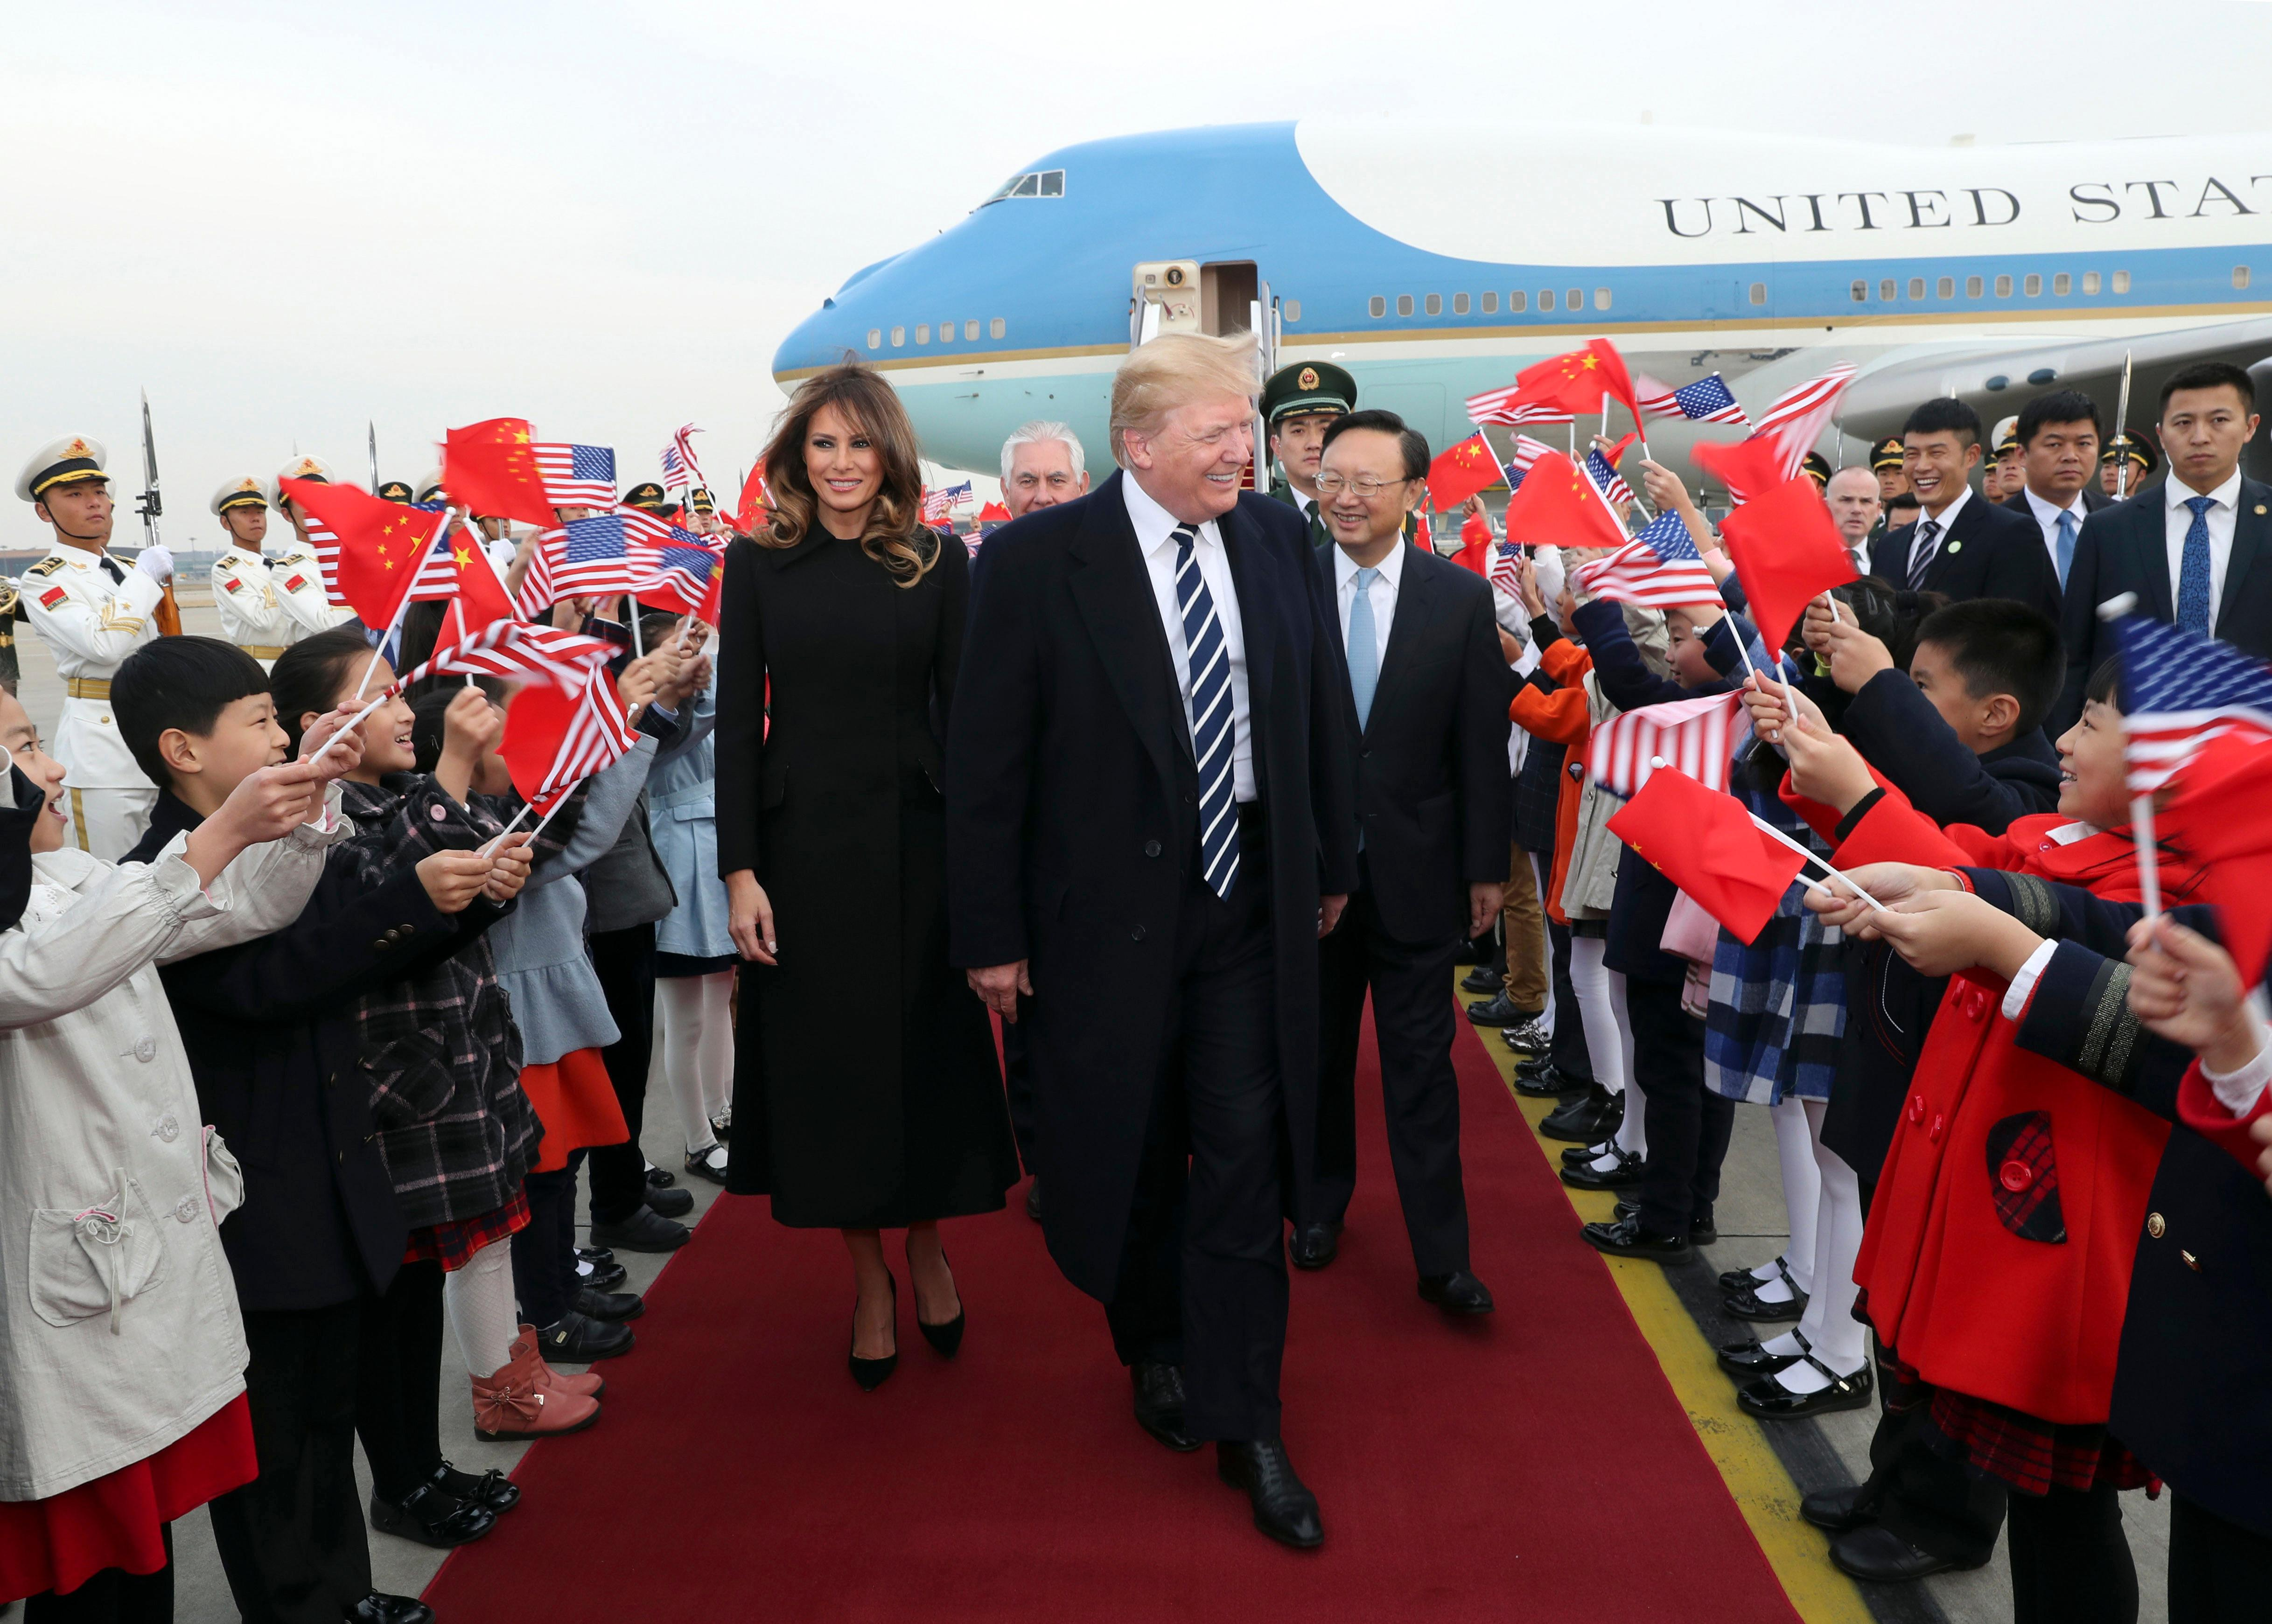 In this photo released by Xinhua News Agency, children wave U.S. and Chinese flags as U.S. President Donald Trump and first lady Melania Trump arrive at Beijing Airport, Wednesday, Nov. 8, 2017, in Beijing. Trump is on a five-country trip through Asia traveling to Japan, South Korea, China, Vietnam and the Philippines. (Pang Xinglei/Xinhua via AP)